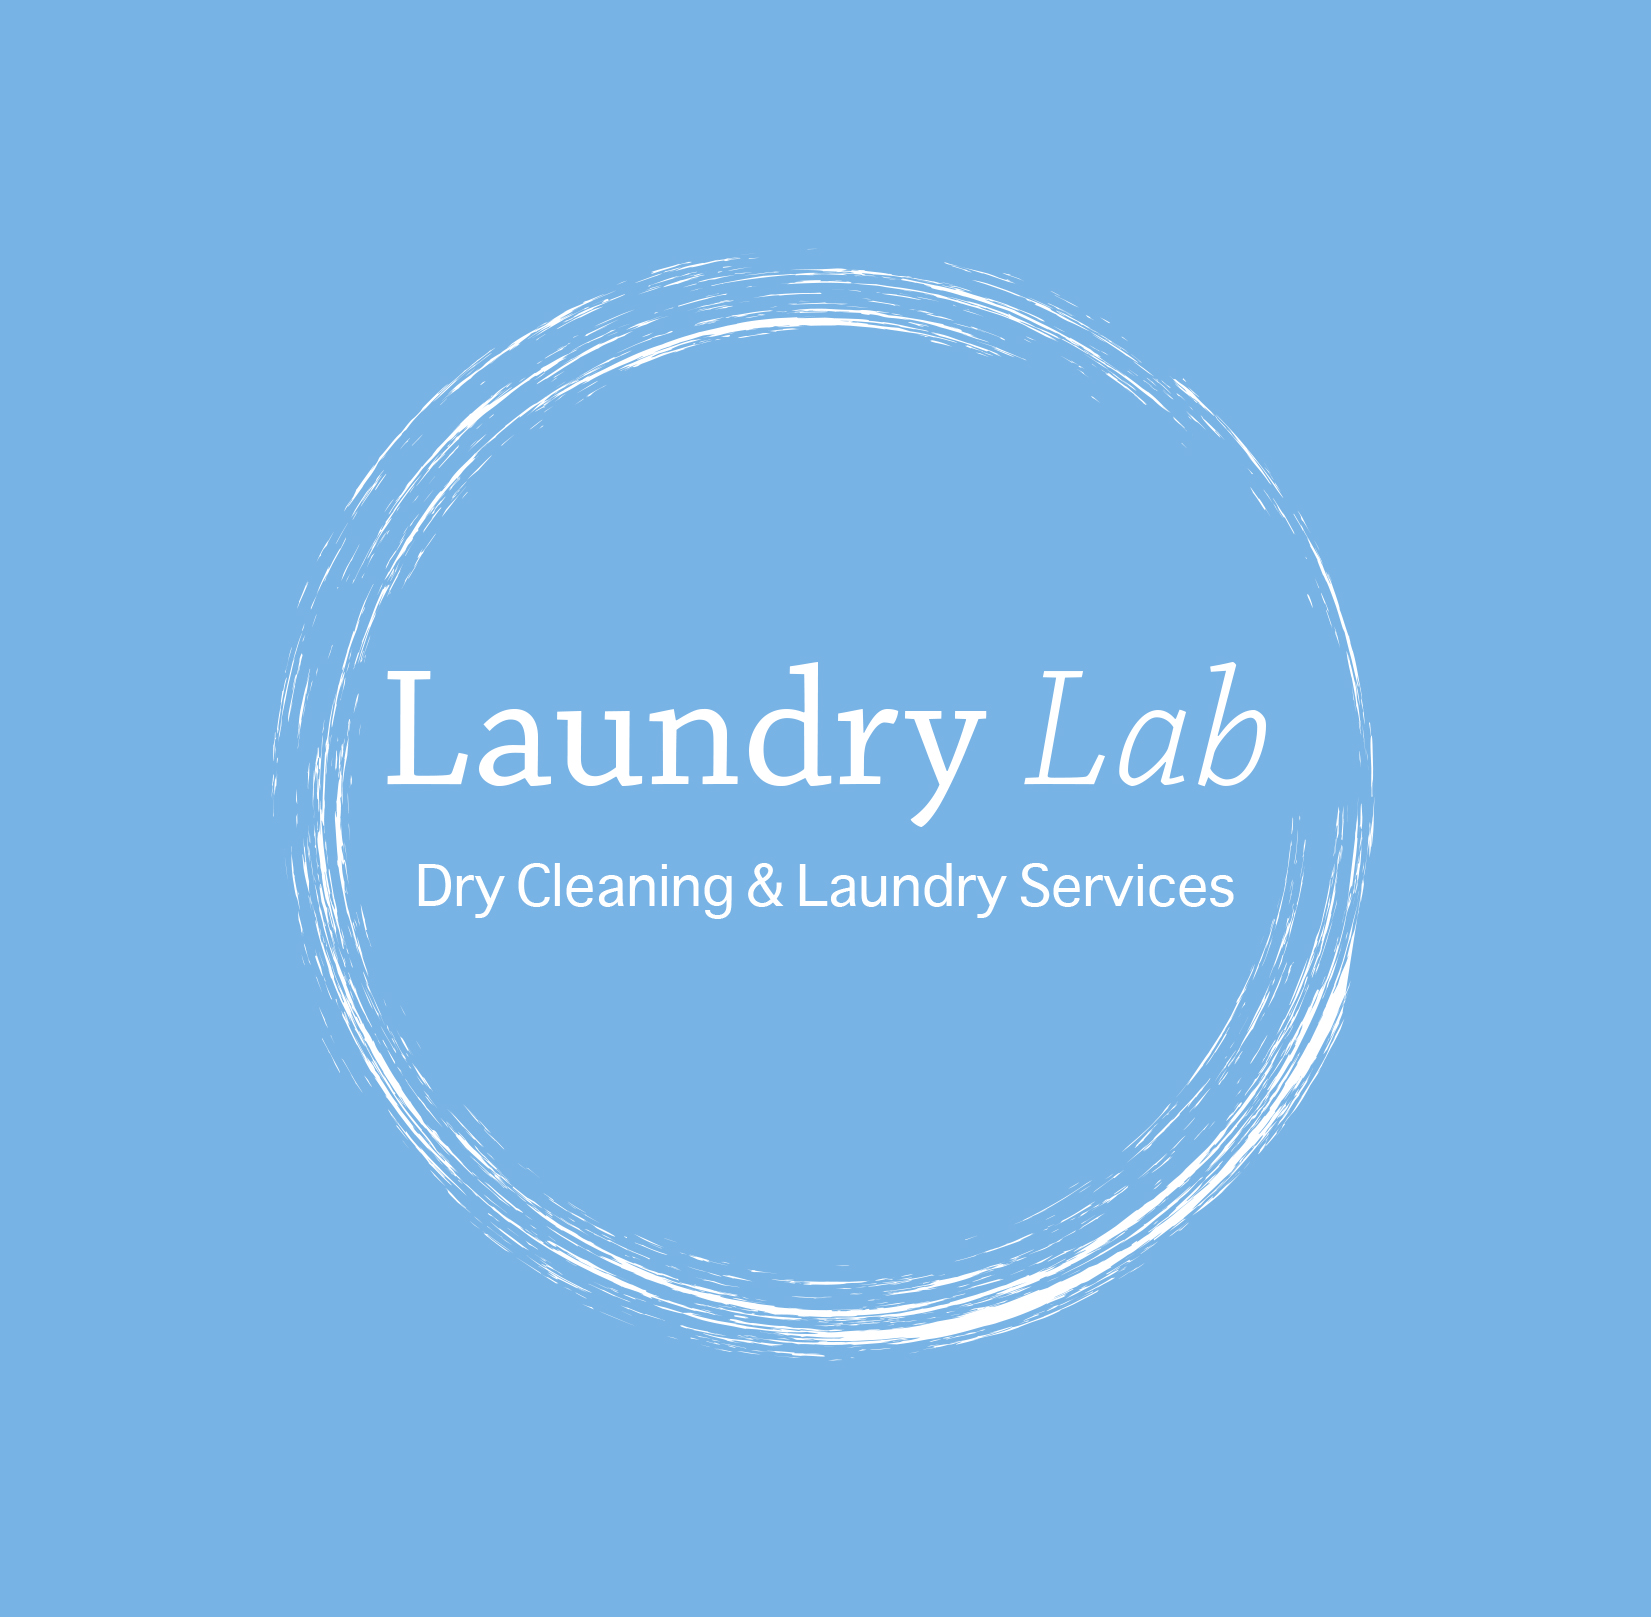 Laundry Lab wants to take out London\'s dirty laundry